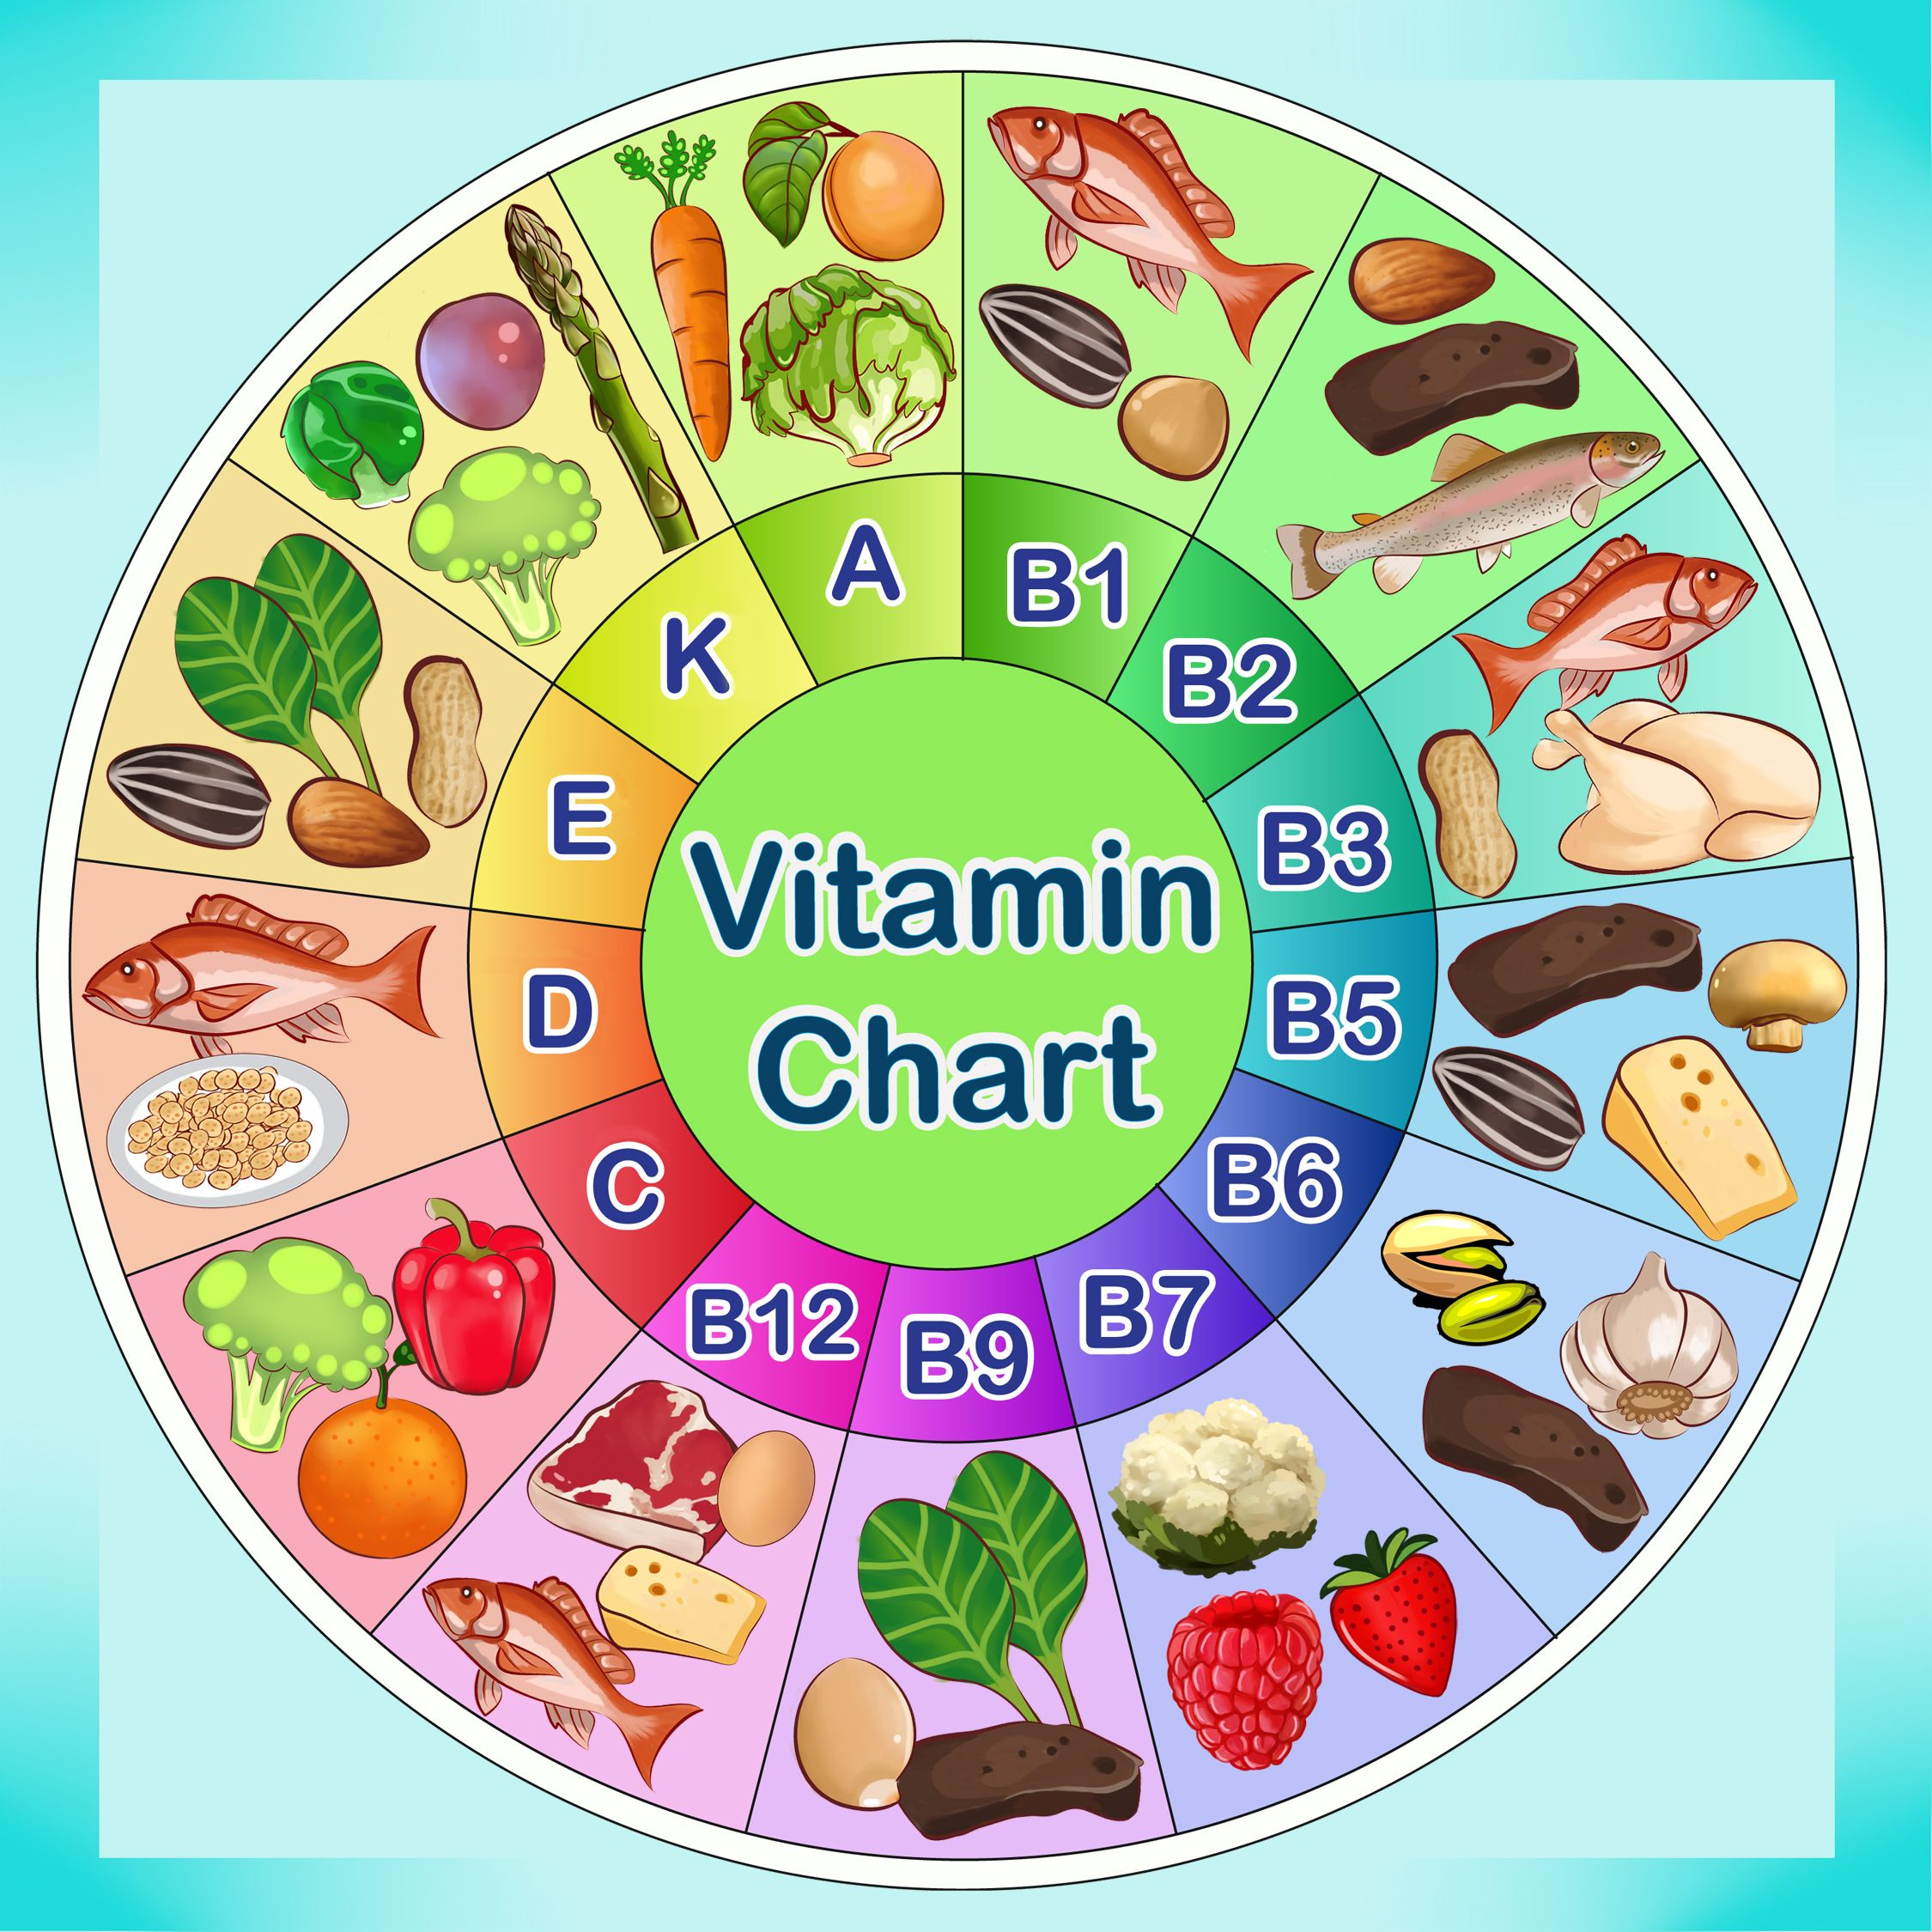 Happy National Nutrition Month